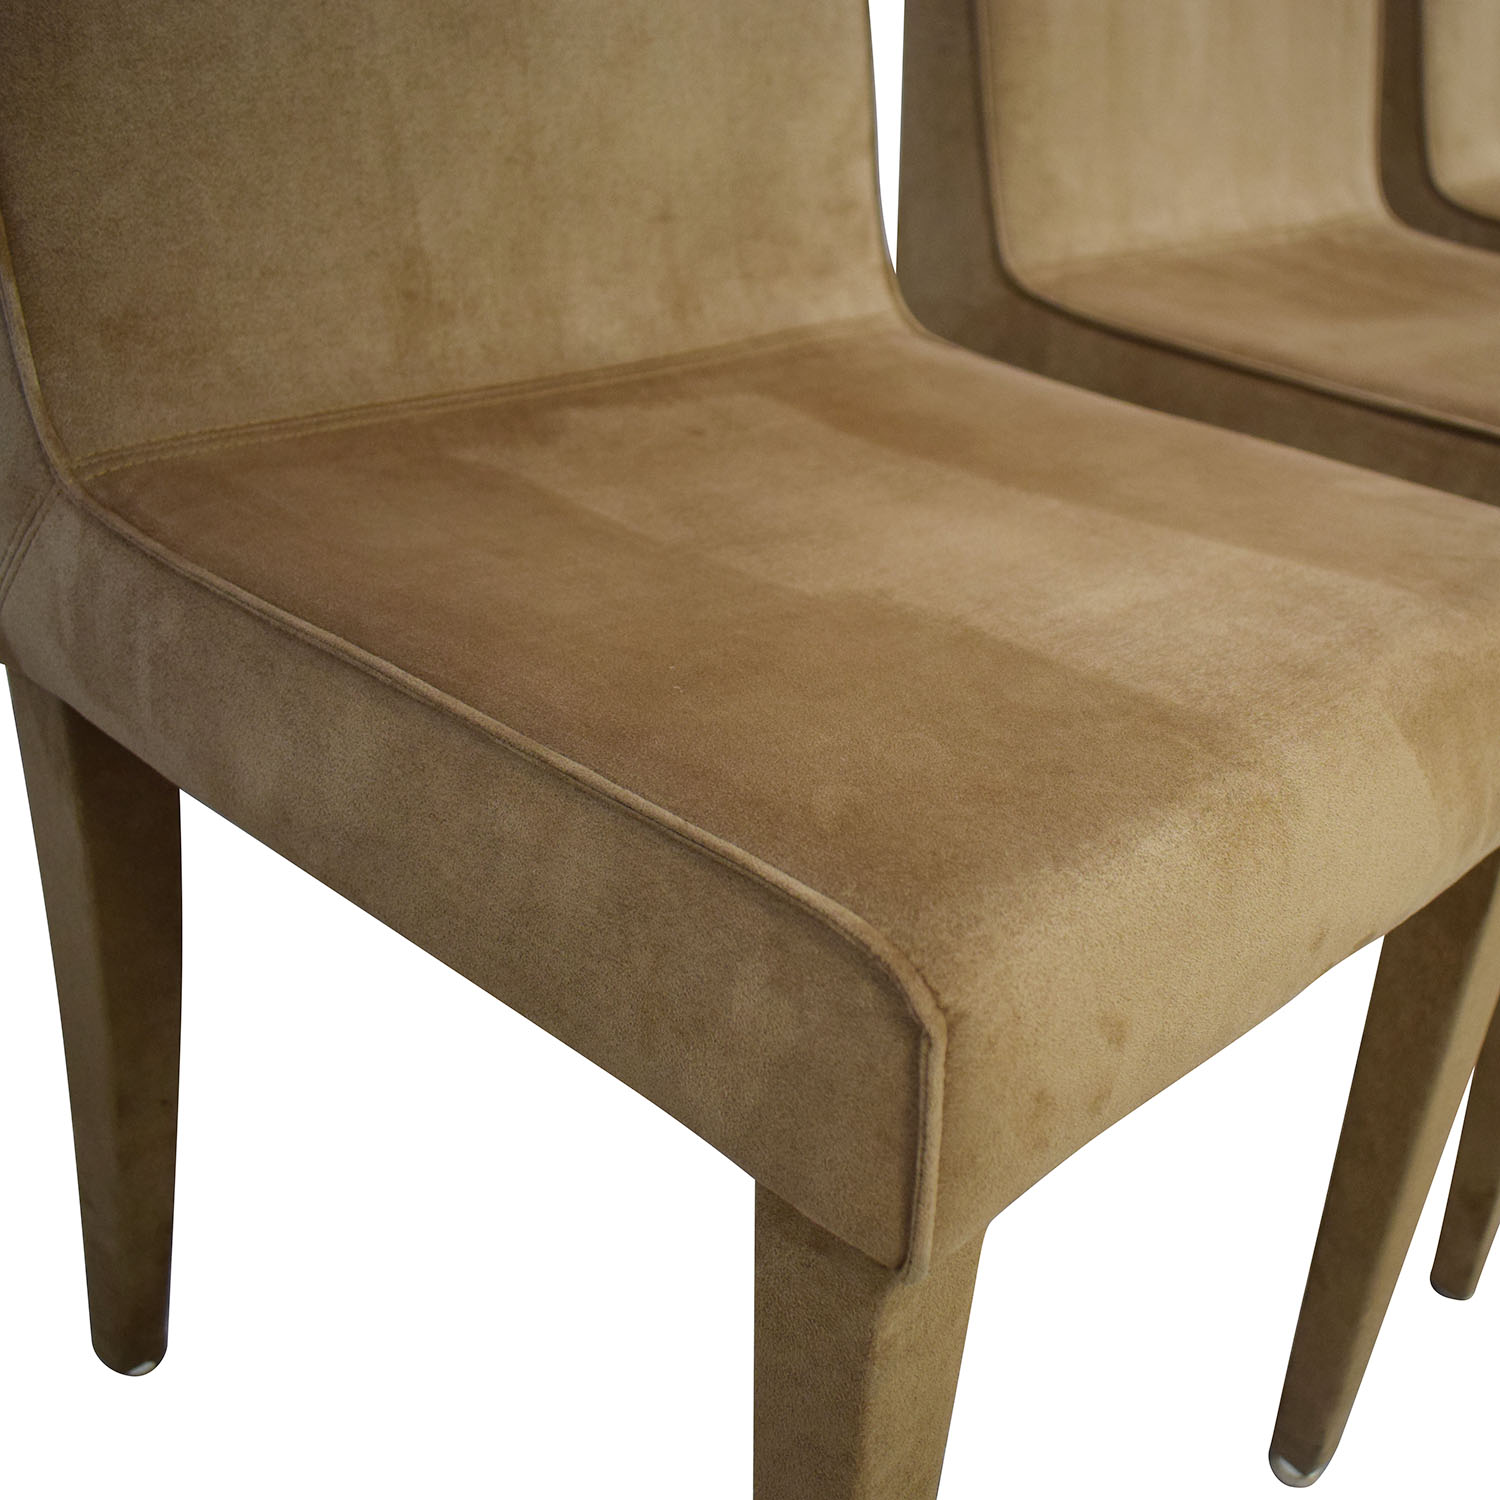 DDC DDC Classic Dining Chairs on sale